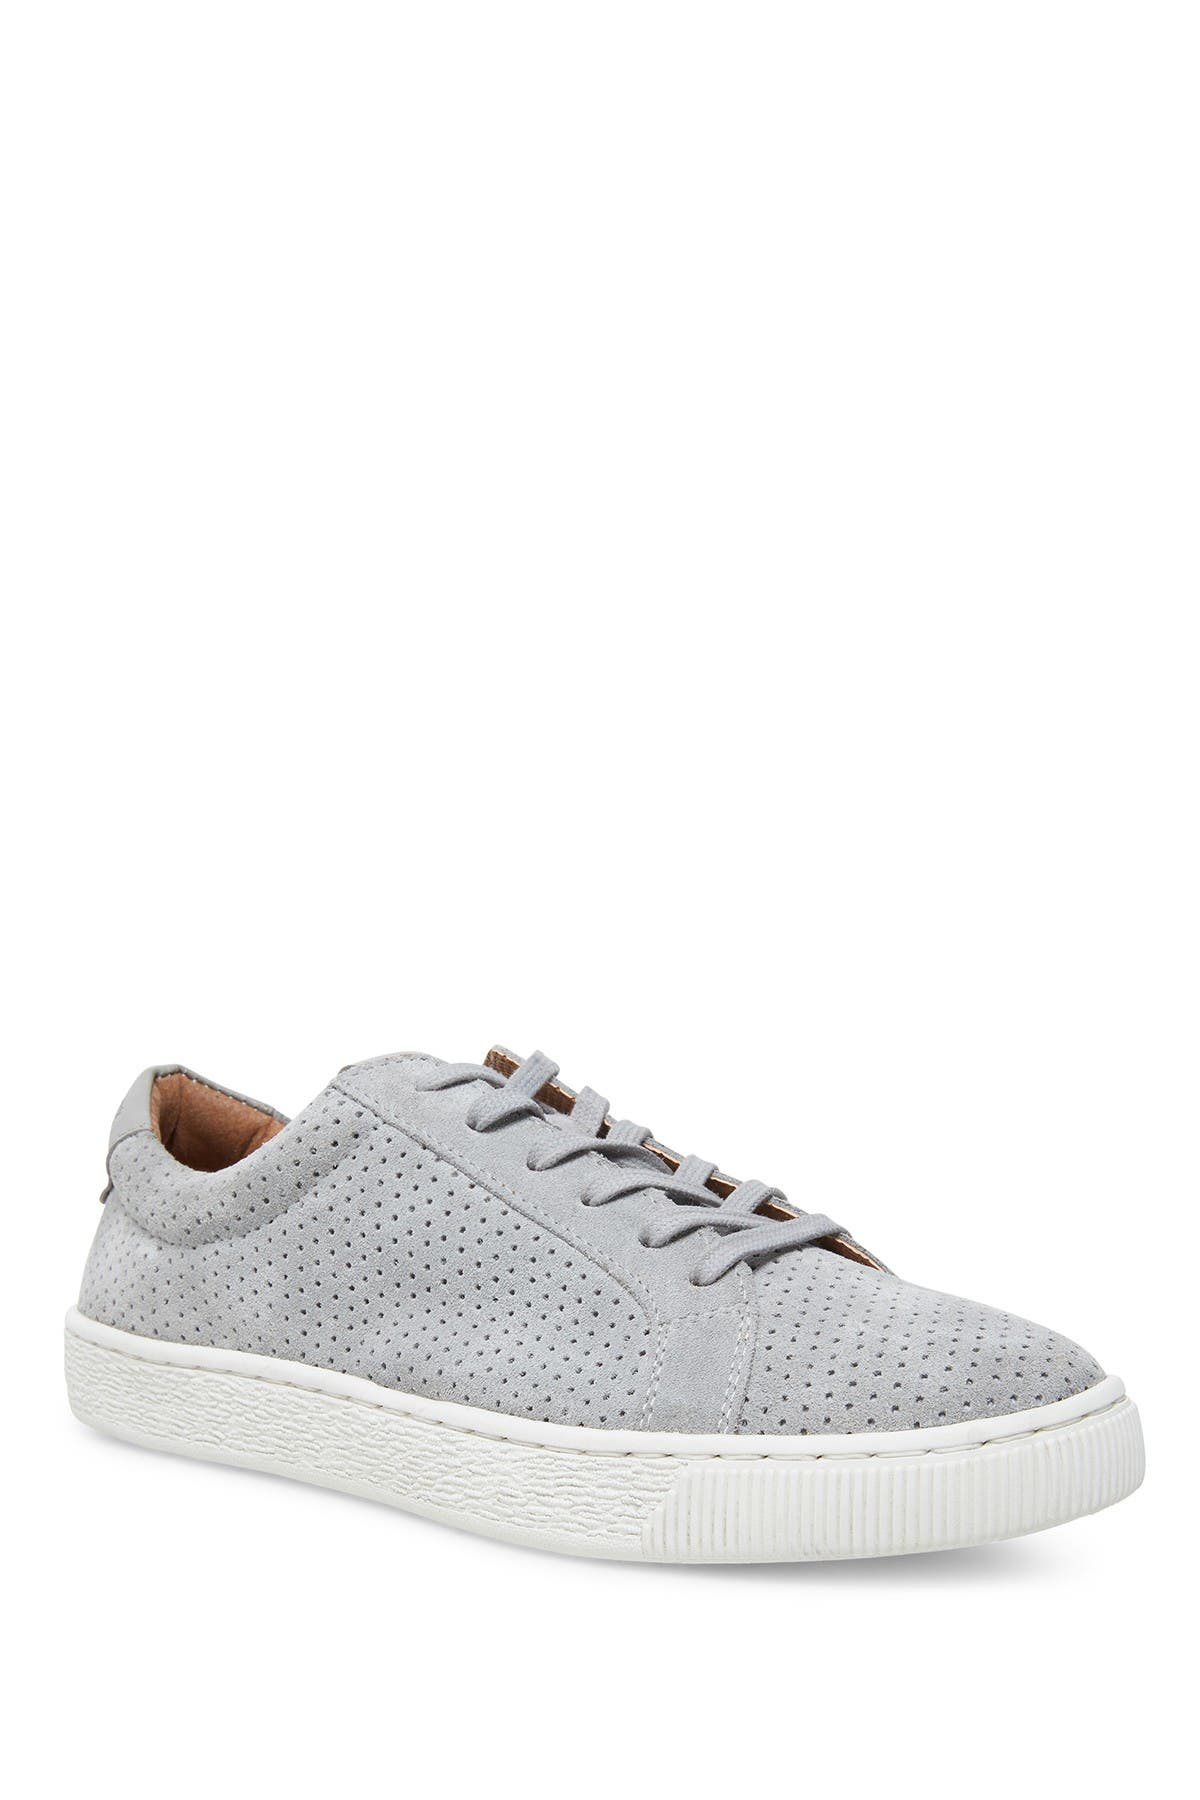 Image of Steve Madden Stoked Perforated Sneaker